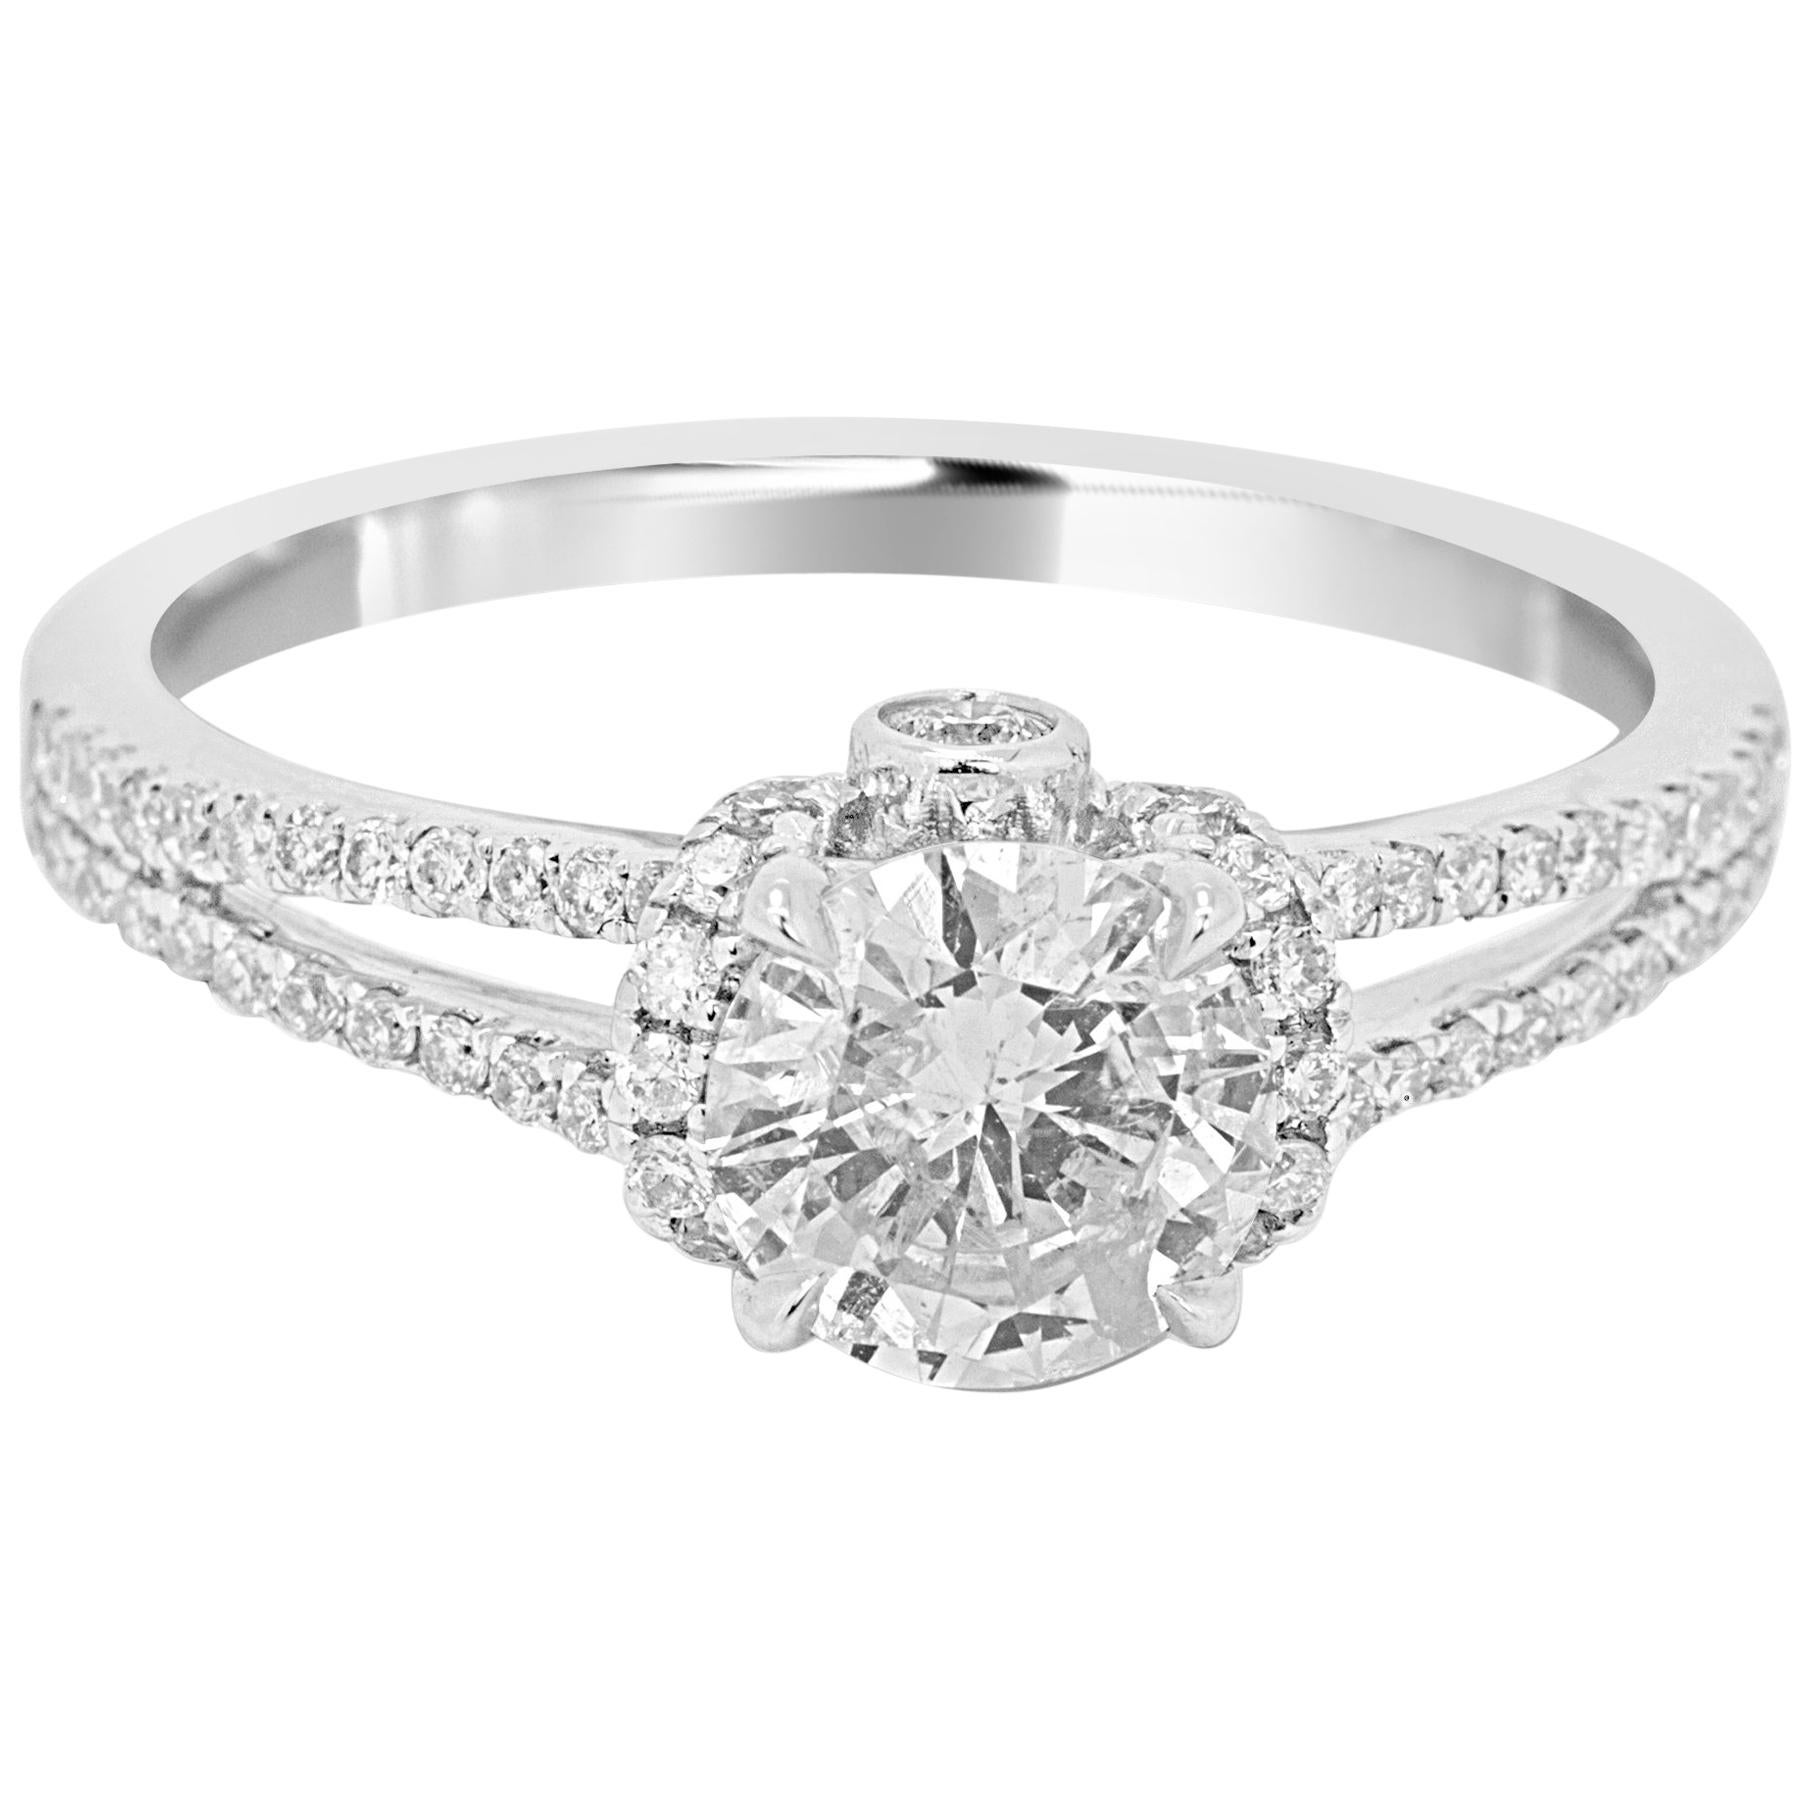 White Diamond Round 1.32 Carat Weight Total 14K White Gold Engagement Ring